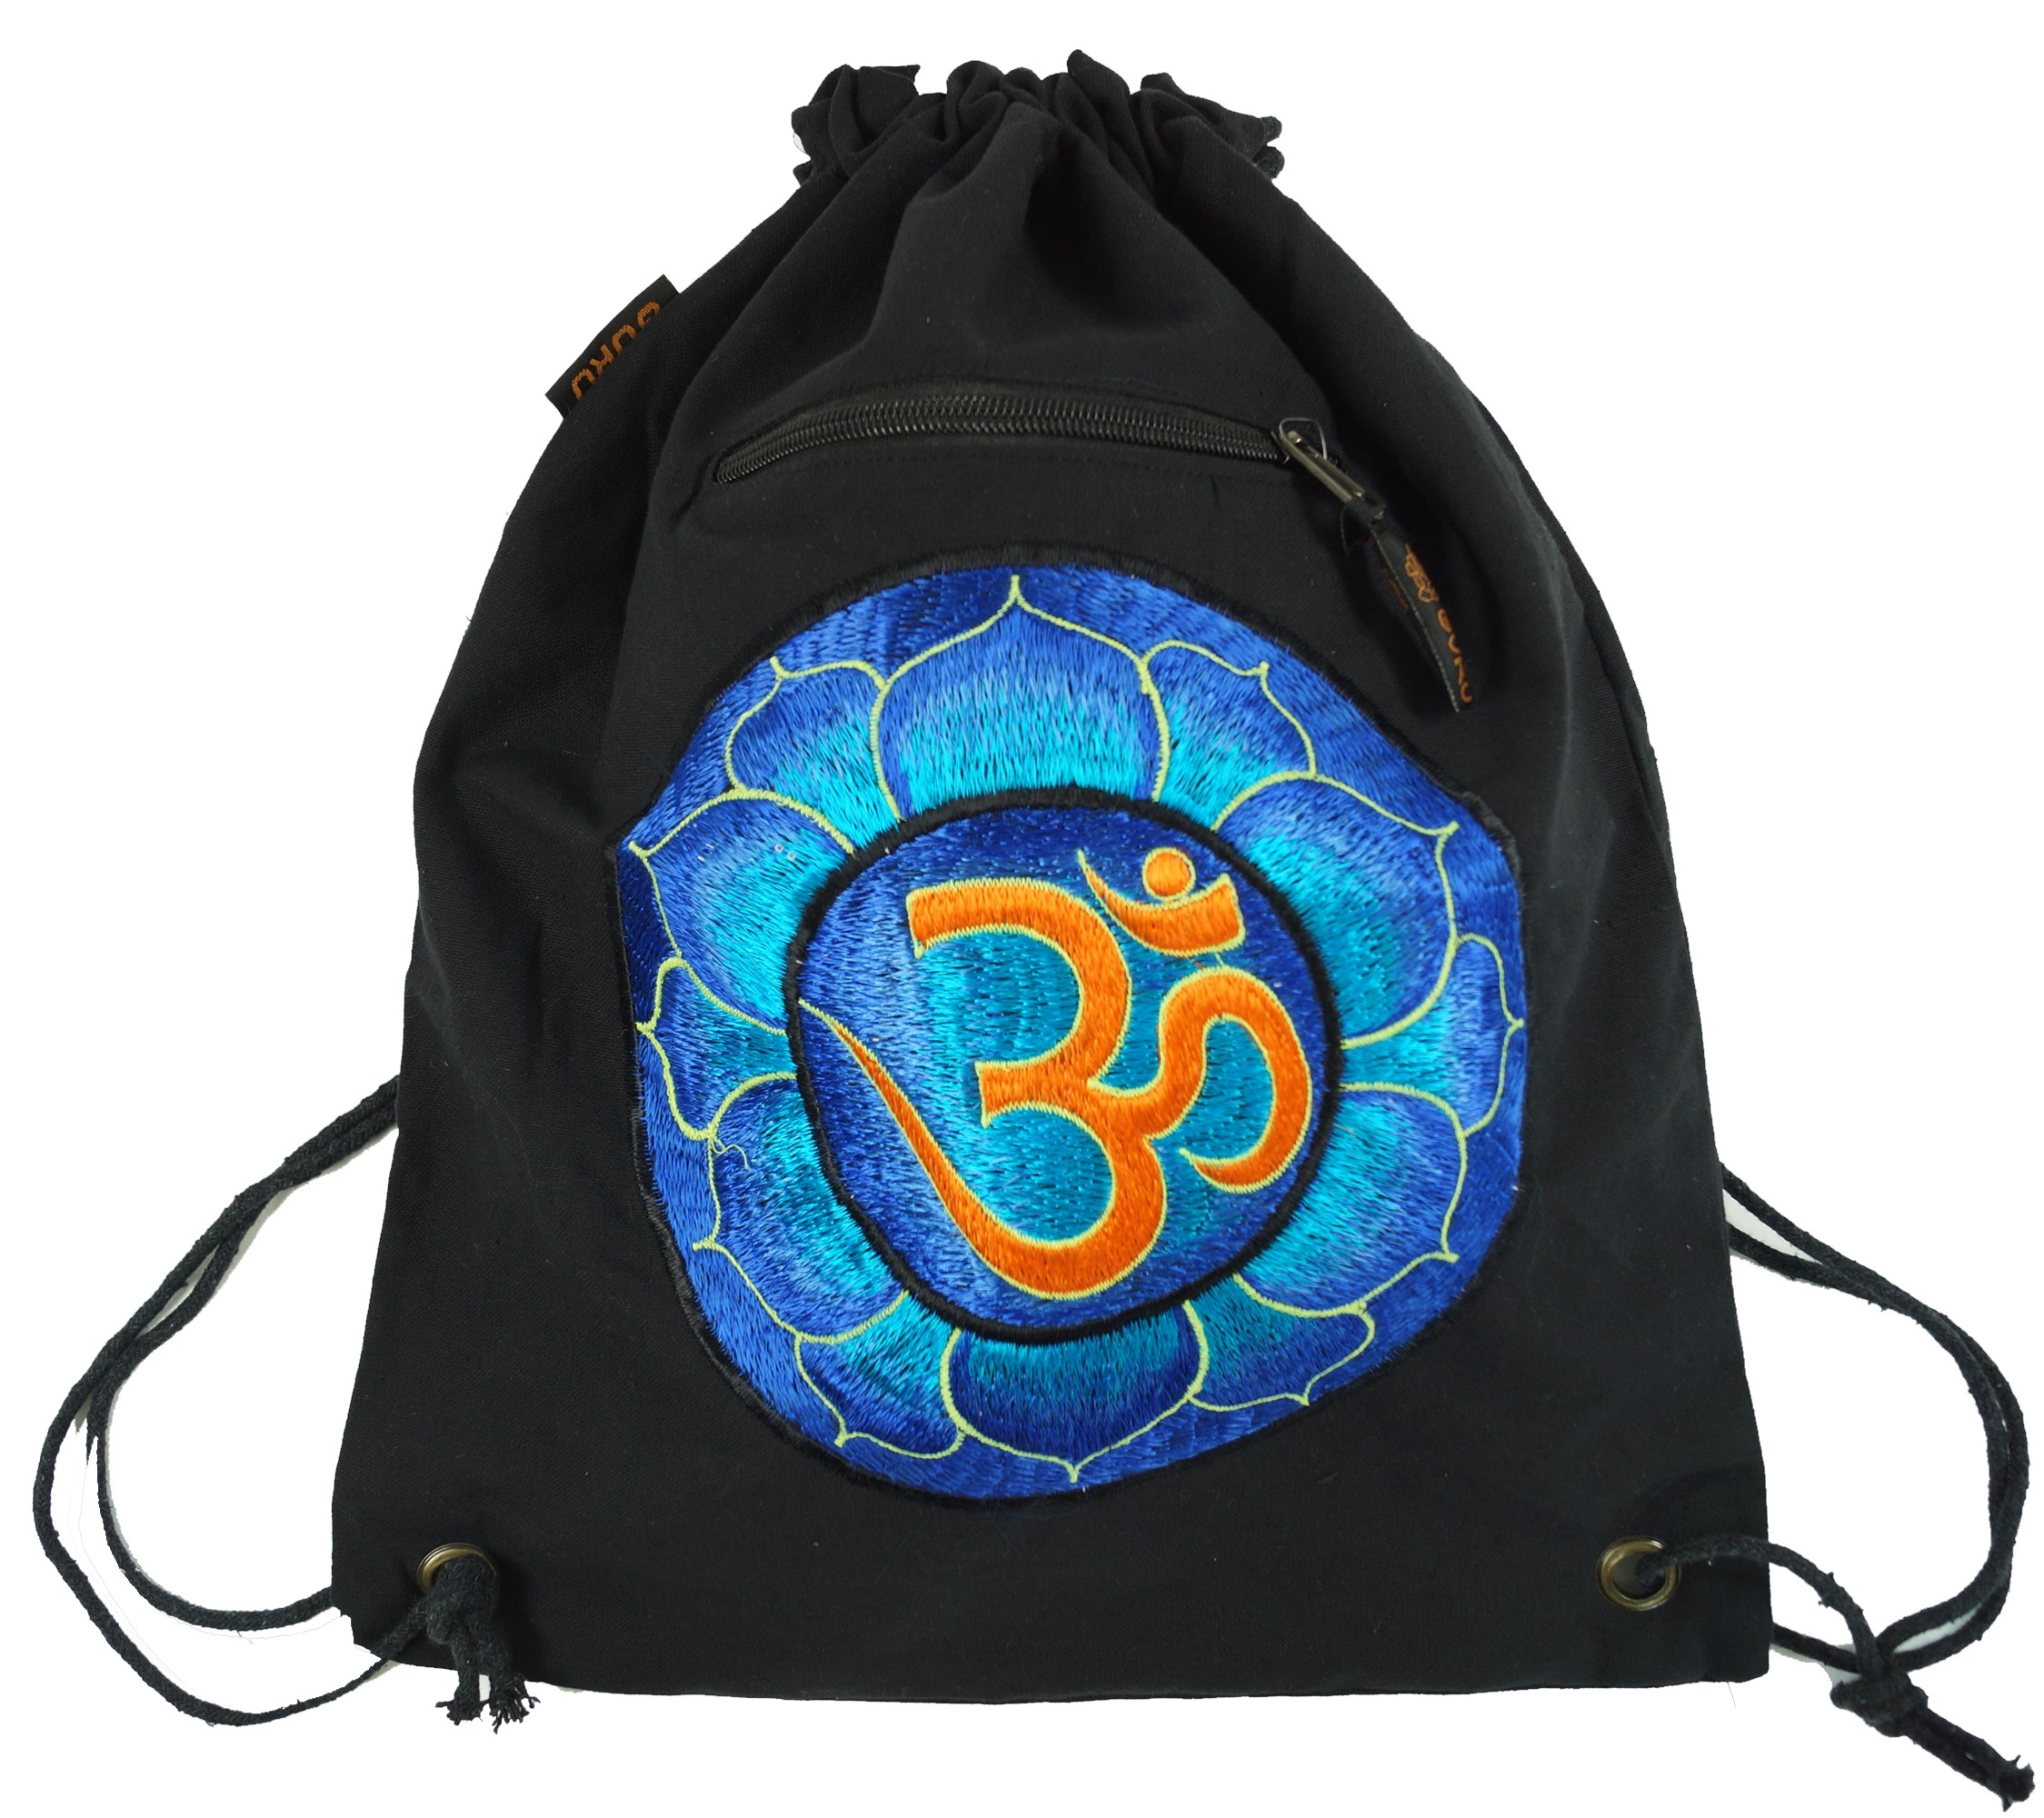 Embroidered gym bag, backpack, sports bag, leisure bag, Goa bag, hippie bag blackOm 45x38 cm